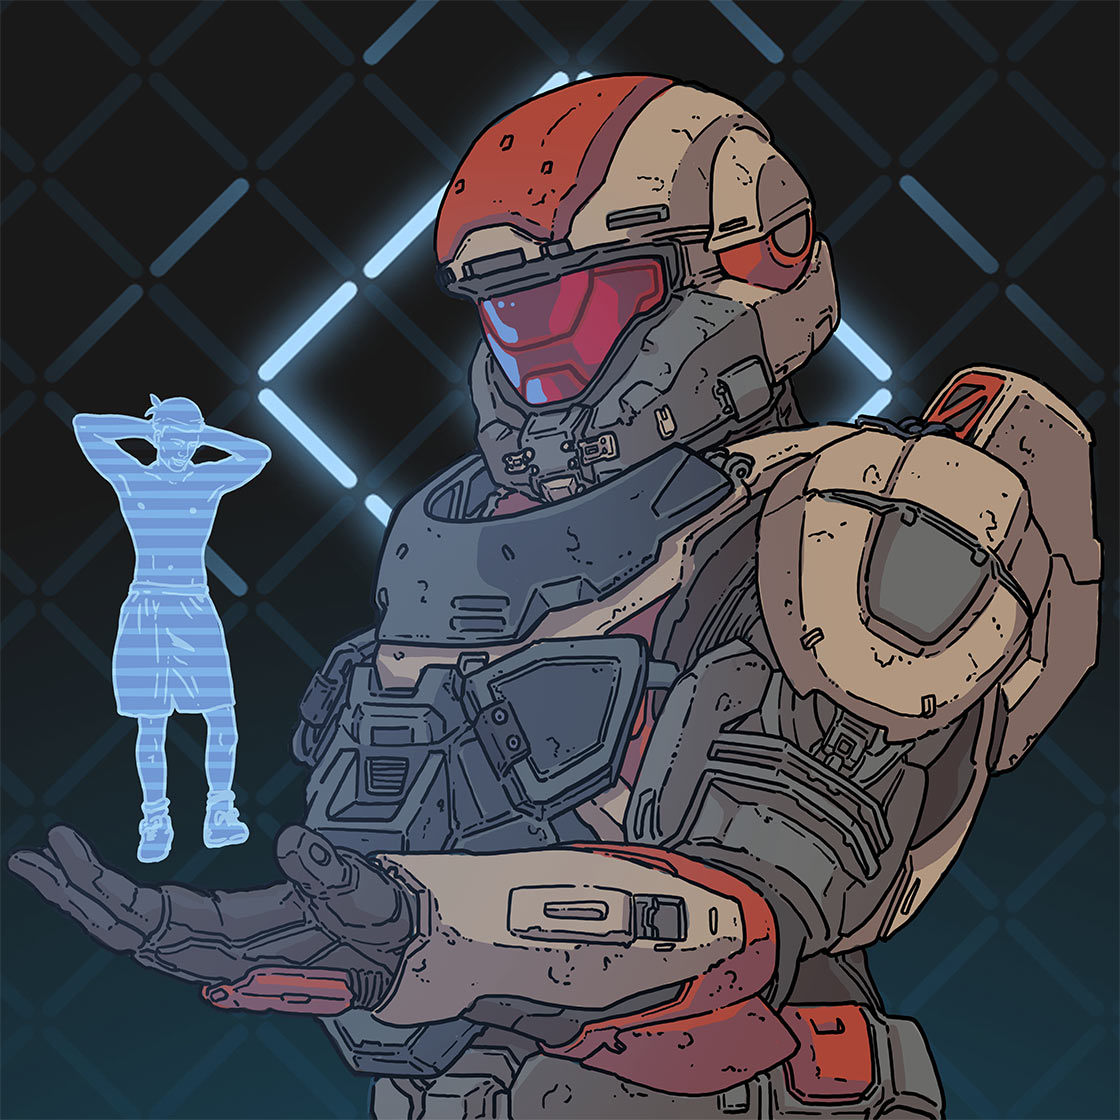 Spartan holding an A I model that is in the form of a man wearing shorts.